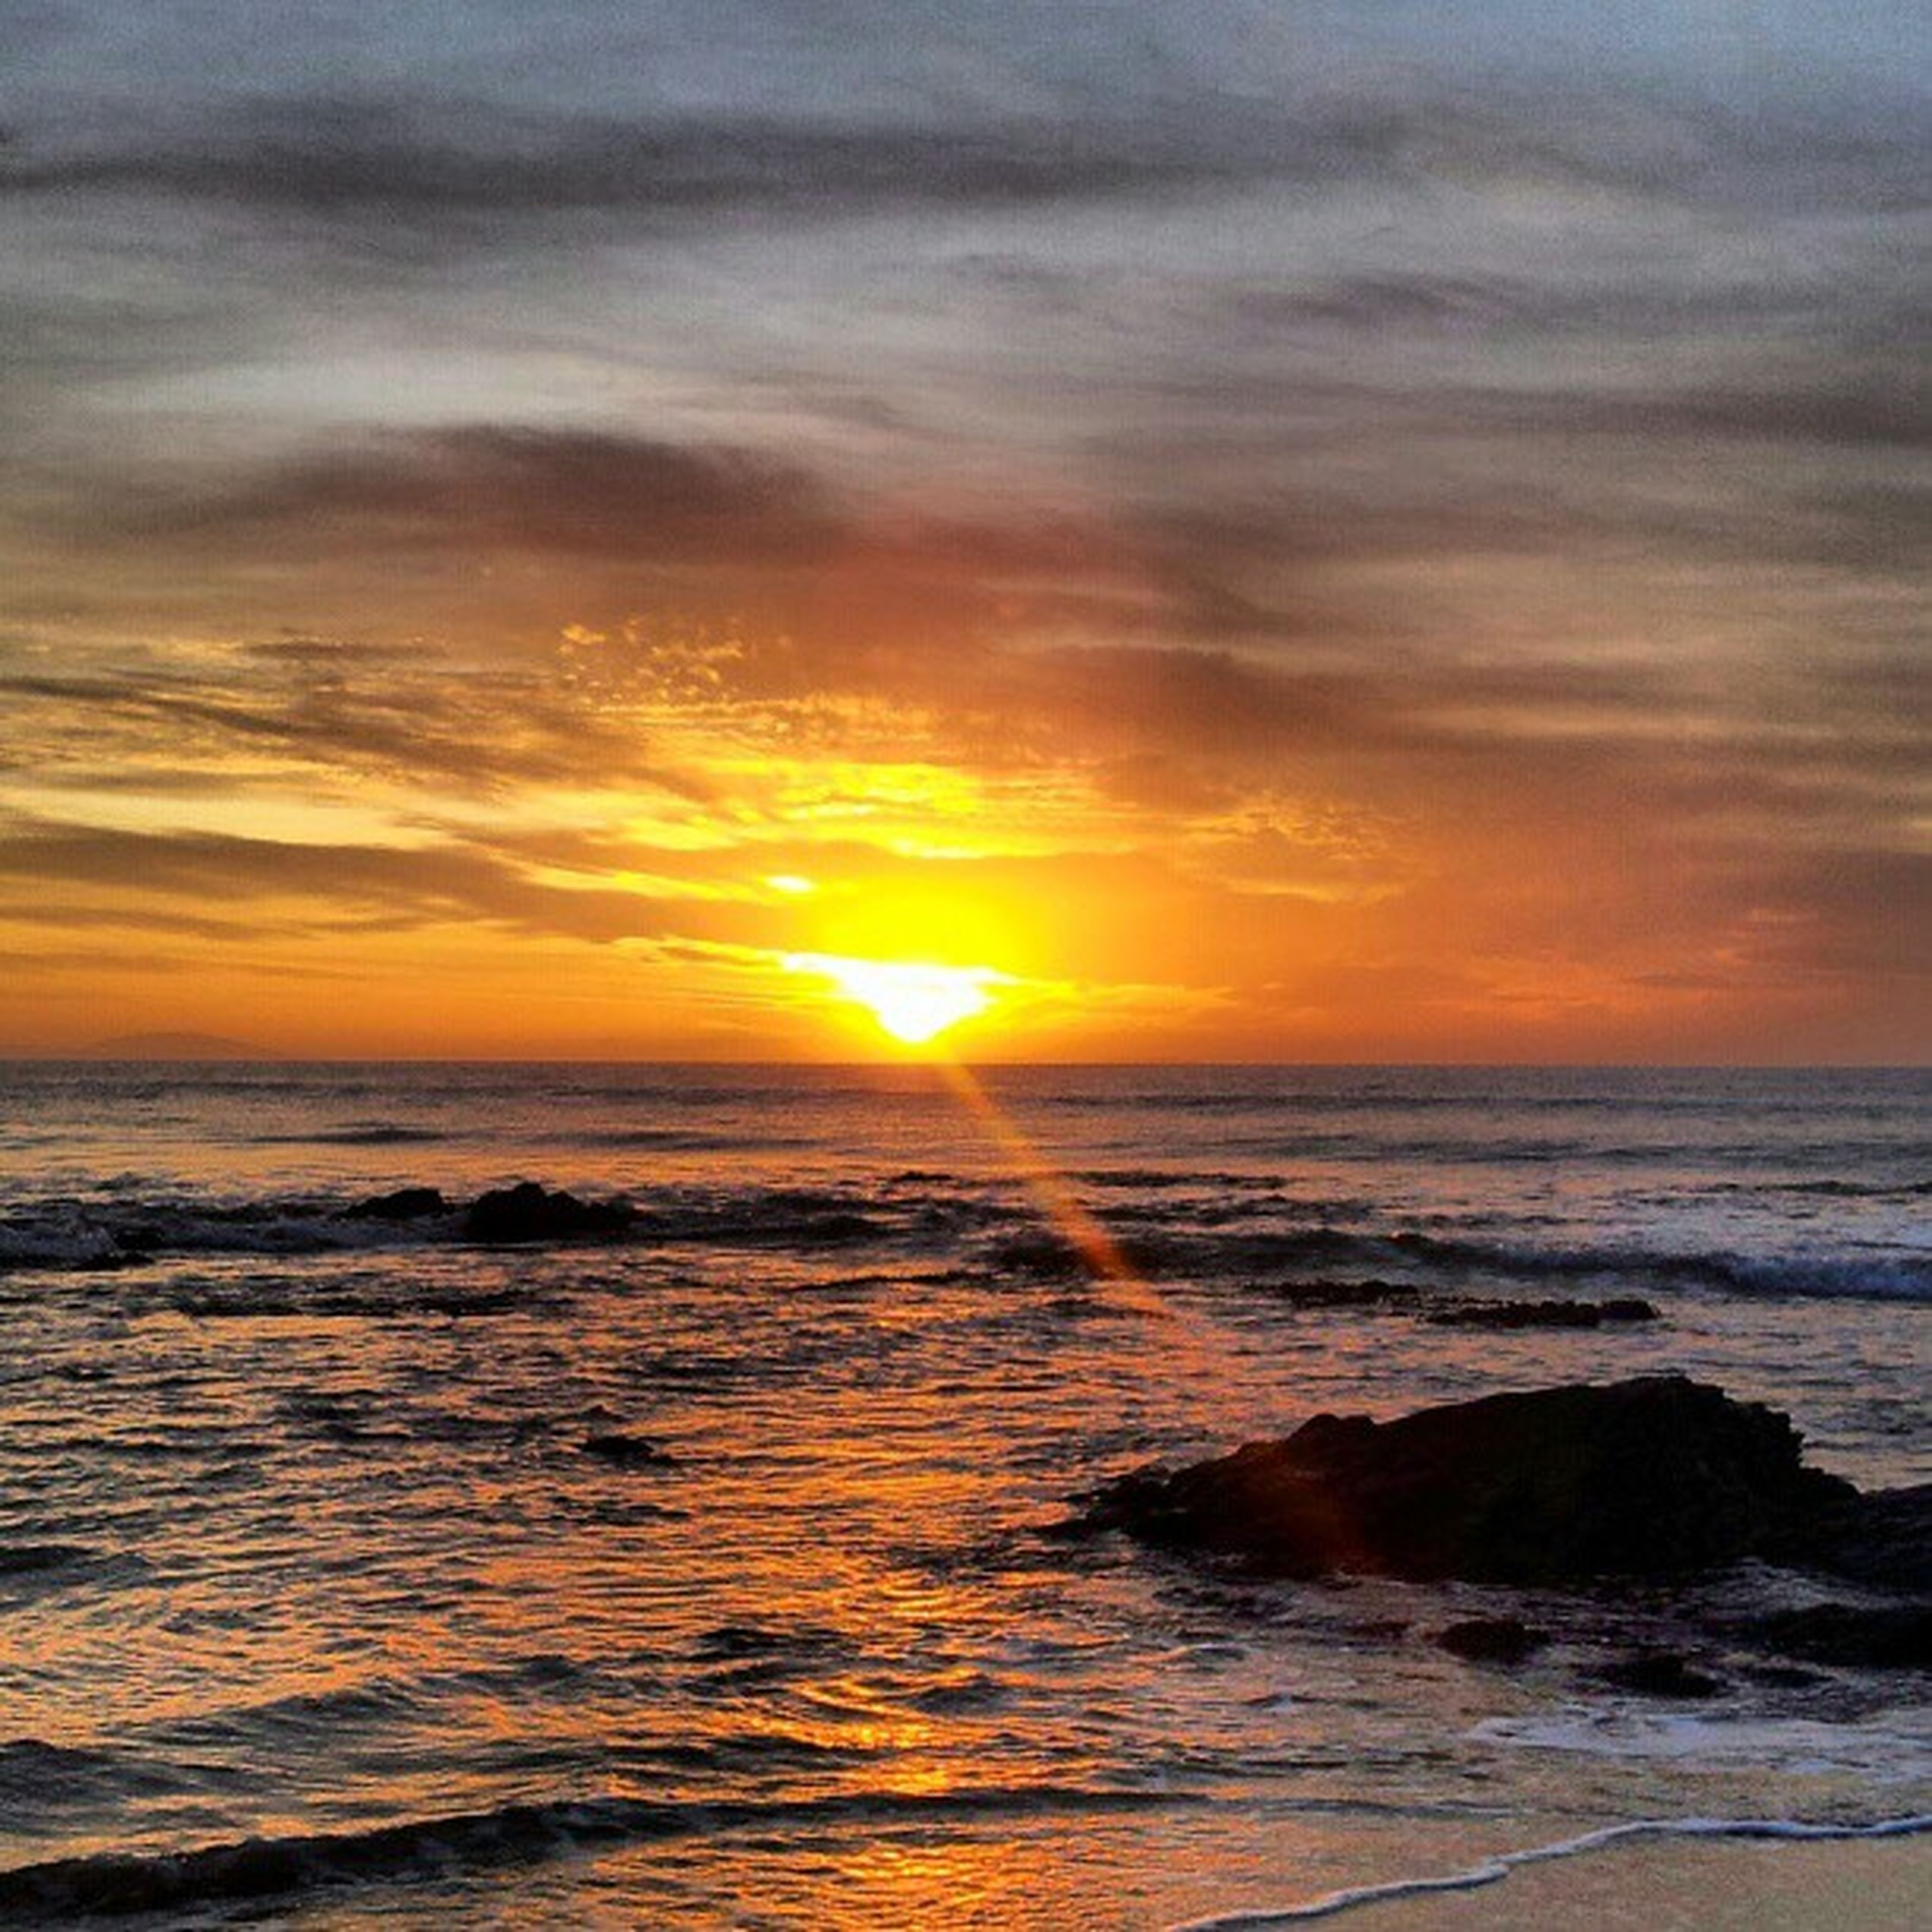 sunset, sea, water, horizon over water, scenics, beauty in nature, sky, tranquil scene, orange color, tranquility, beach, sun, wave, nature, idyllic, cloud - sky, shore, rock - object, outdoors, surf